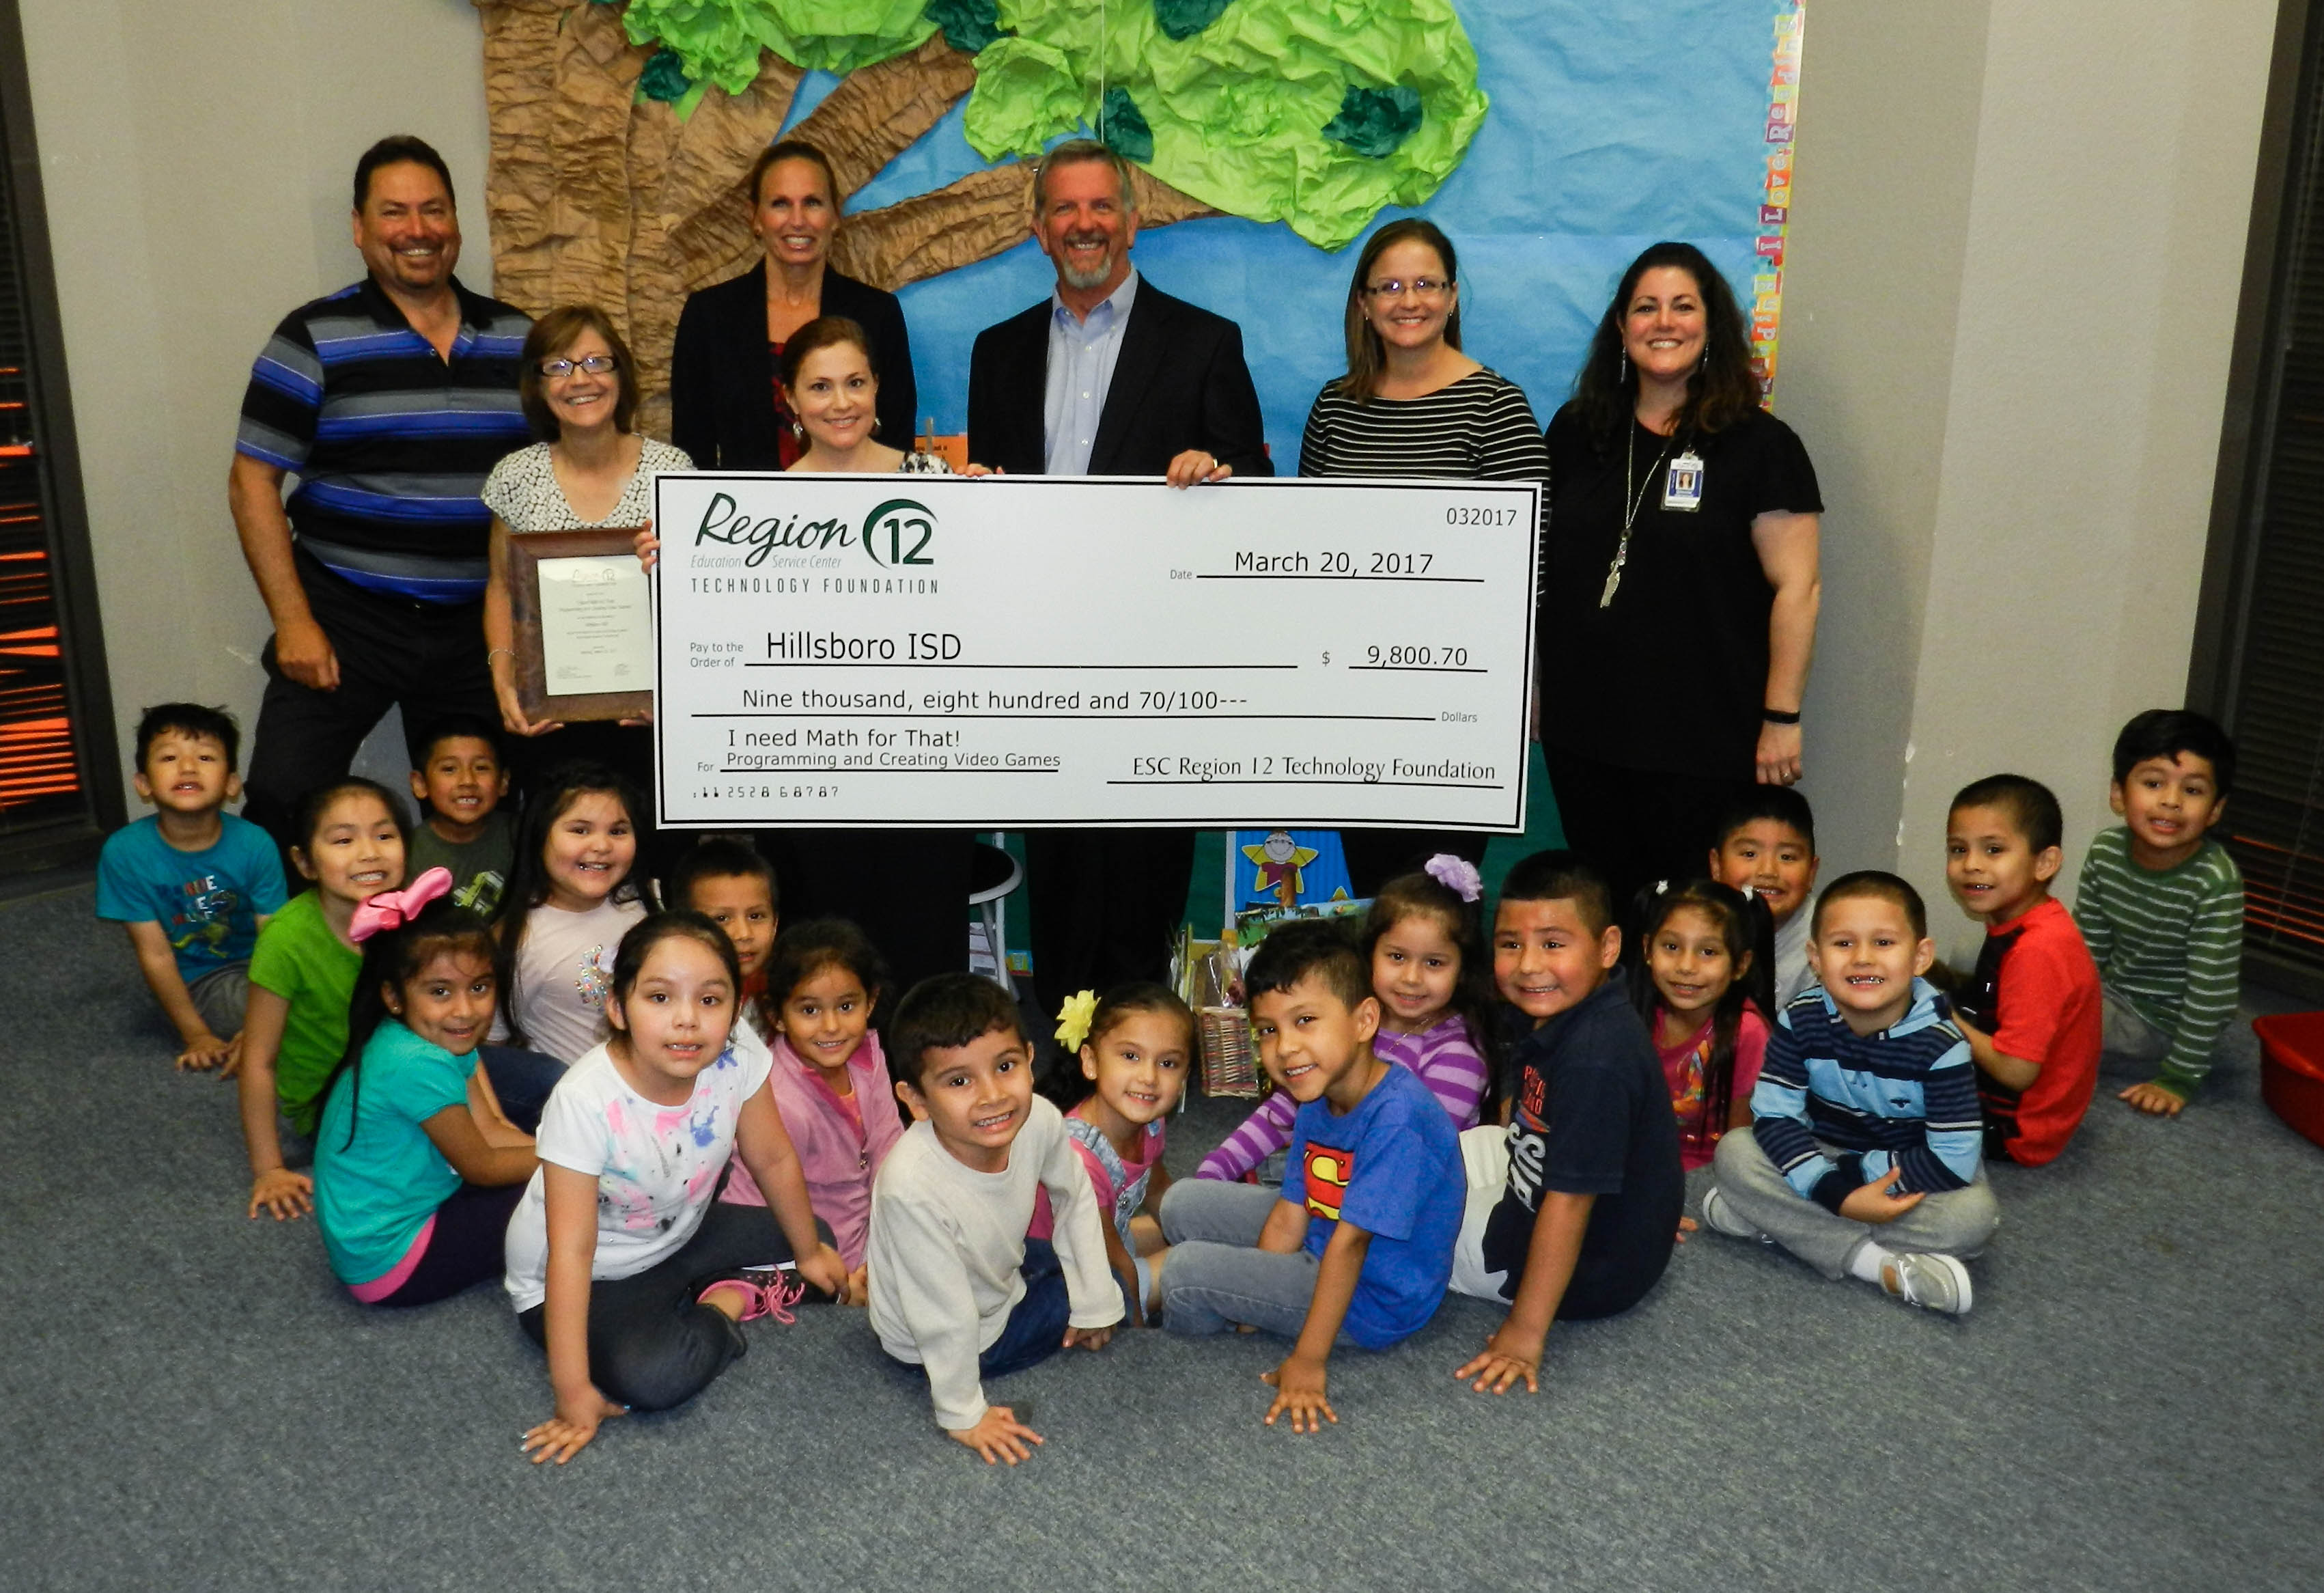 students of Hillsboro ISD pose with a large check they earned from the Technology Foundation